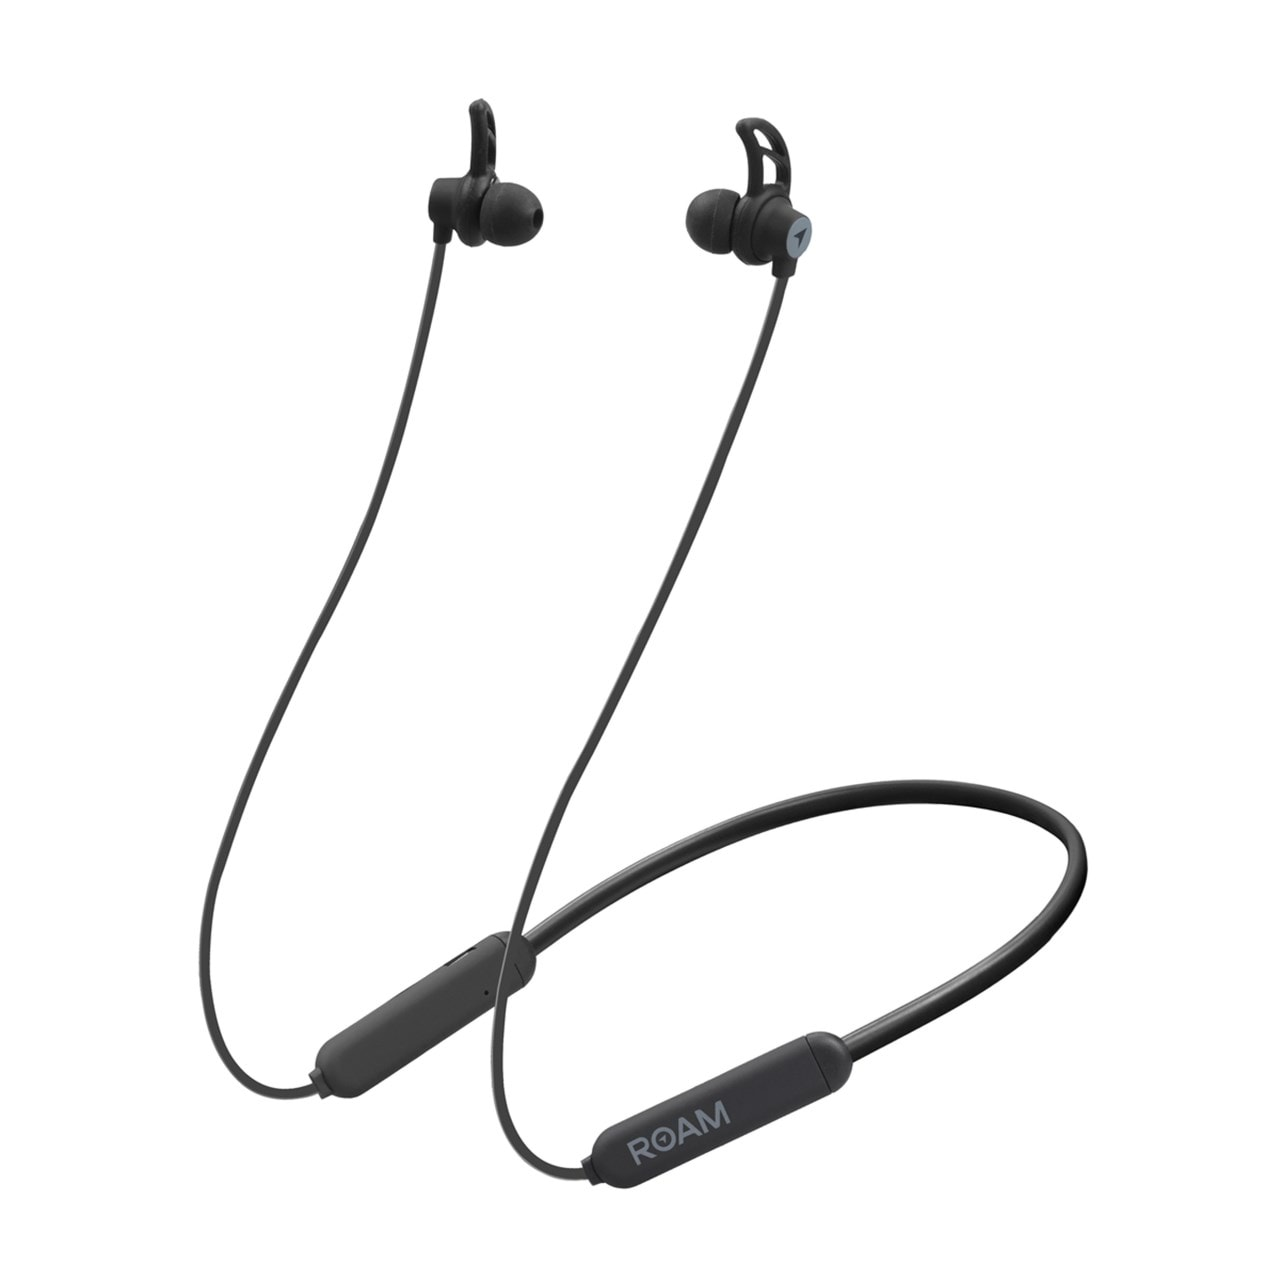 Roam Sports Pro Black Bluetooth Earphones - 3